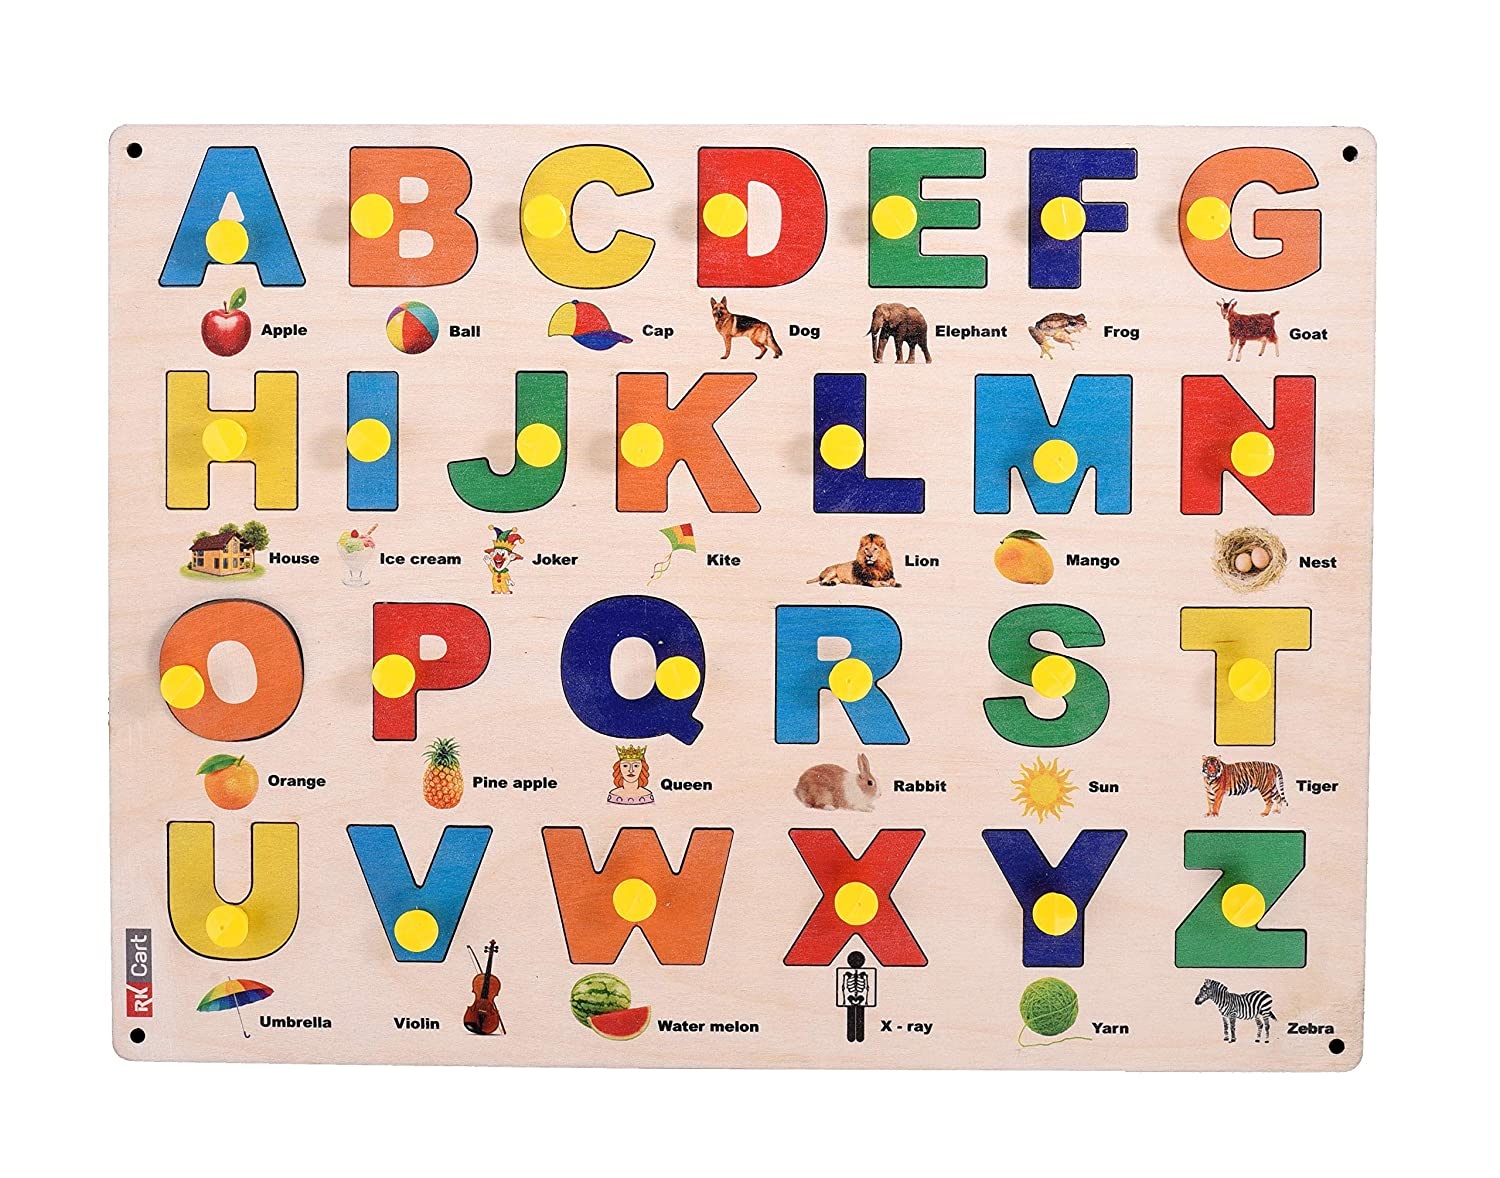 RK Cart Capital Letters ABCD English Alphabets Wooden ...